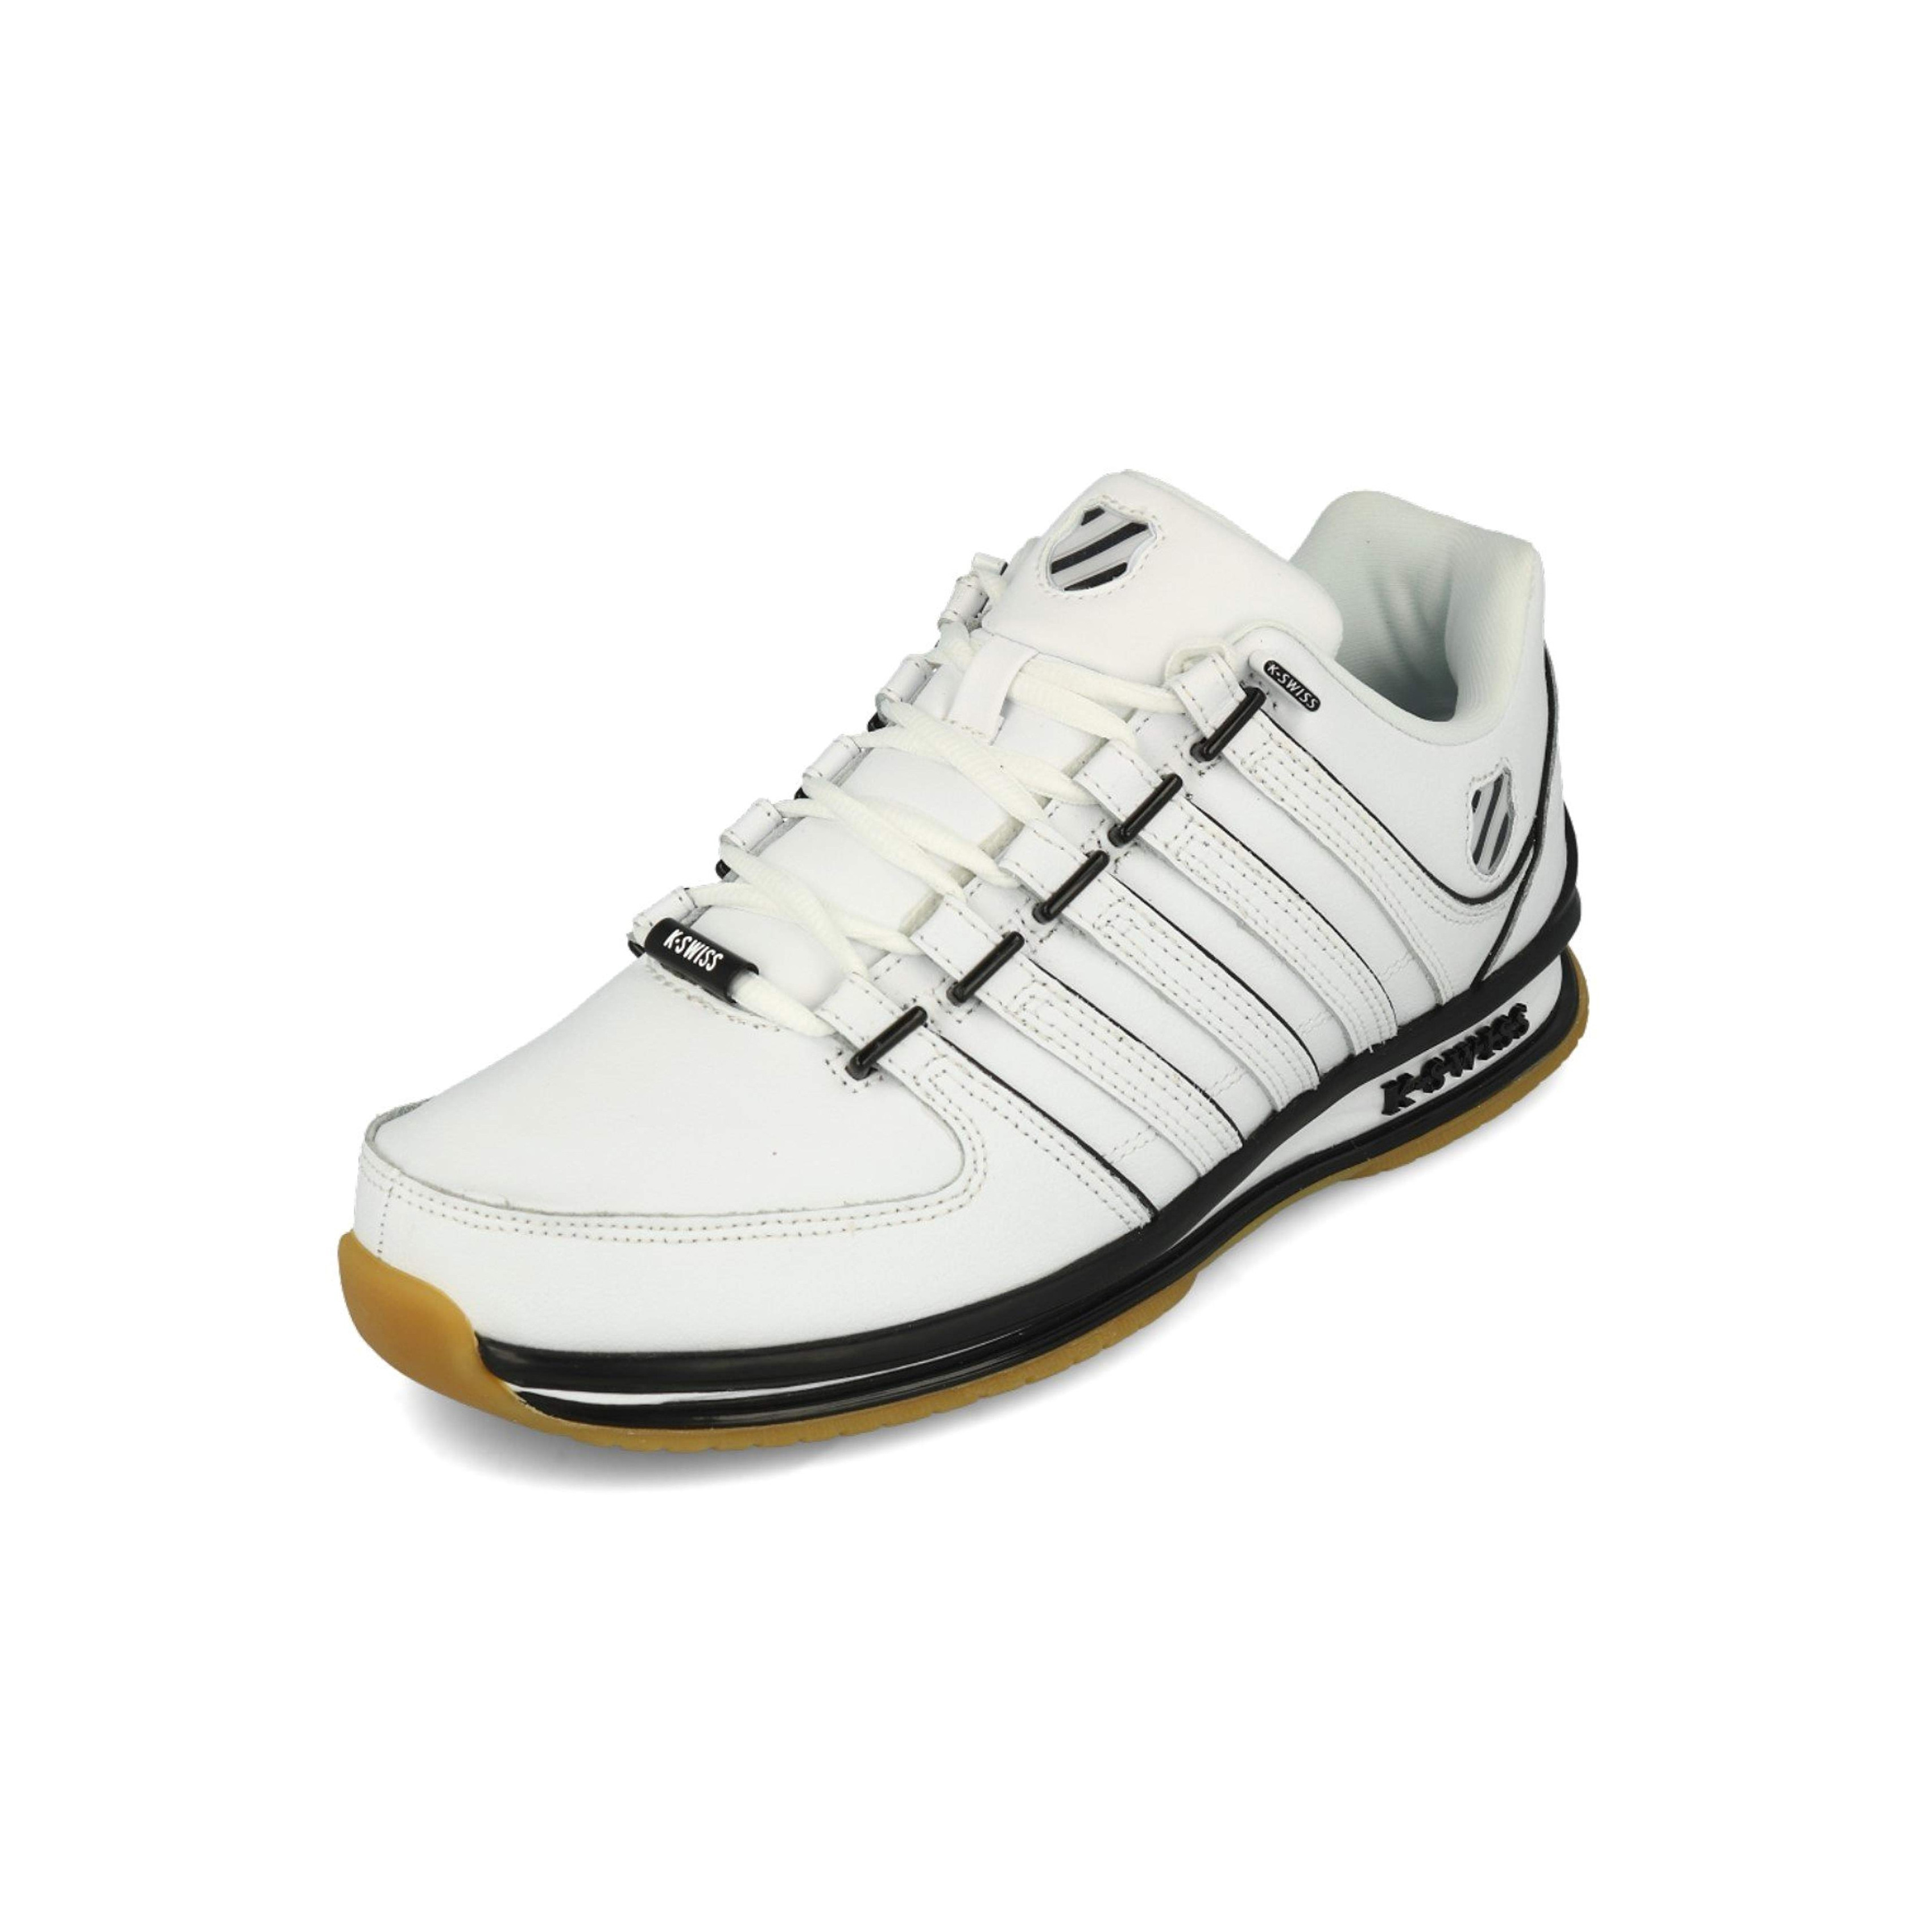 Rinzler SP Leather Shoes Trainers White